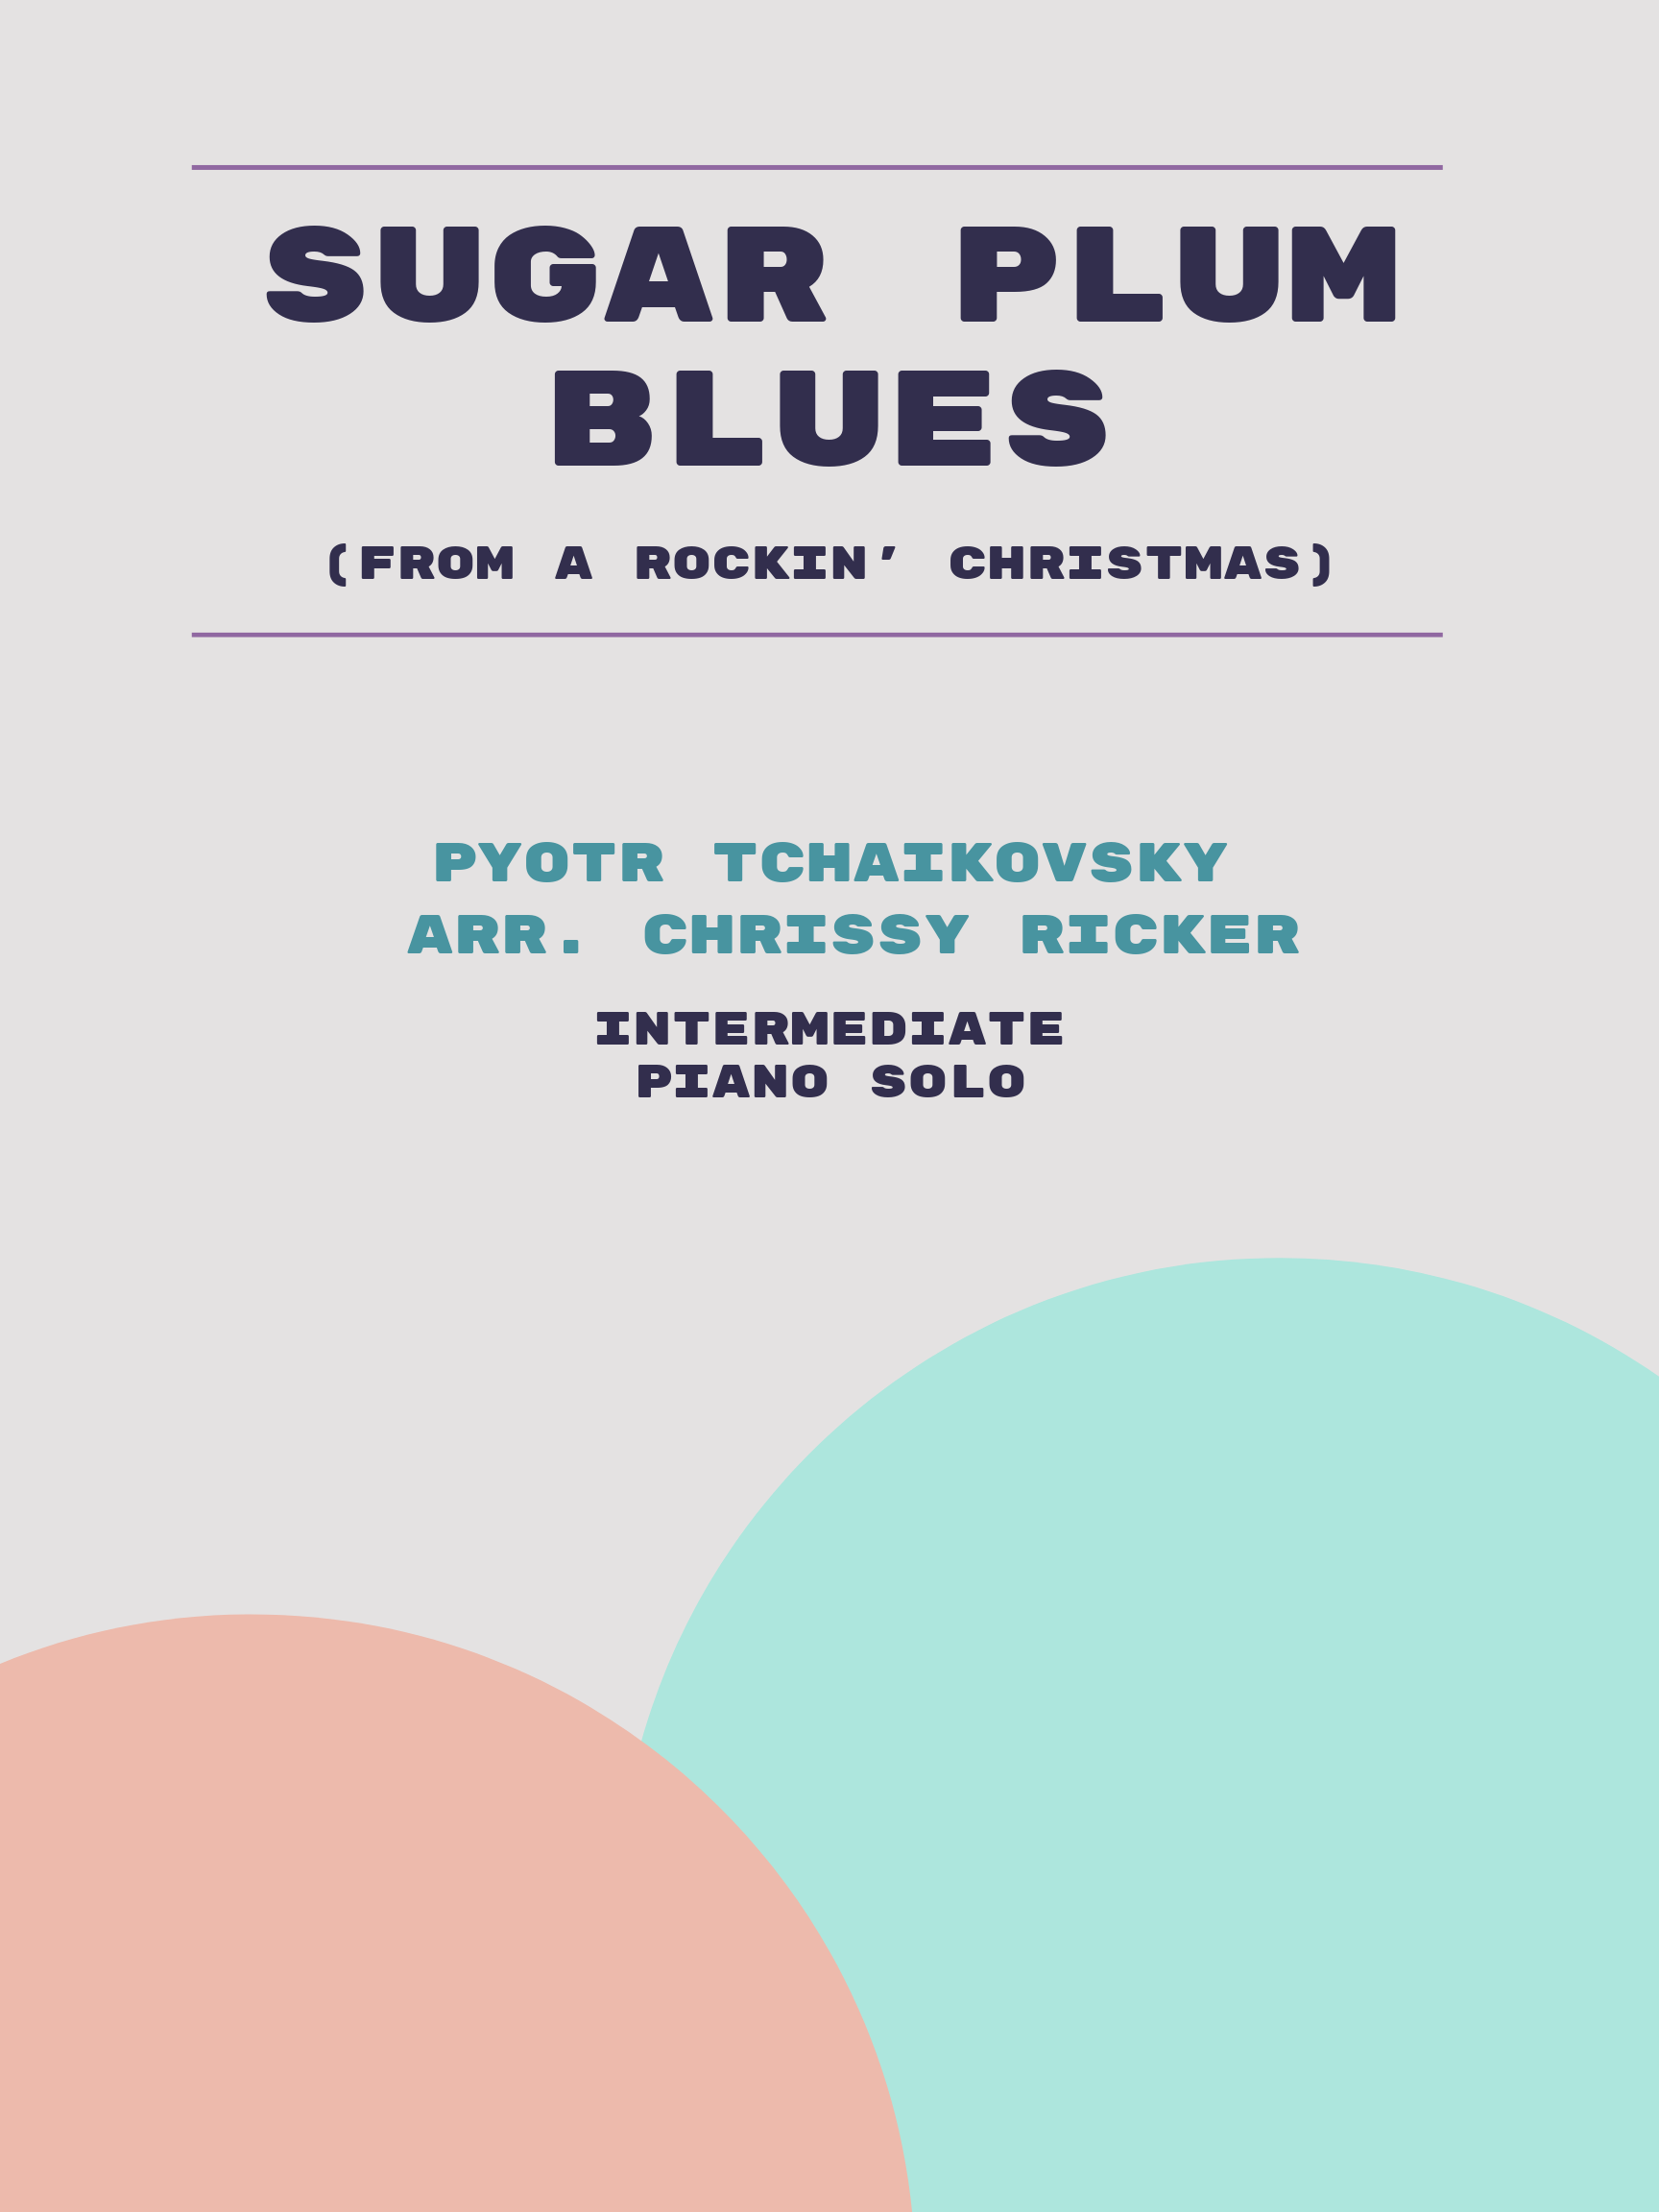 Sugar Plum Blues by Pyotr Tchaikovsky